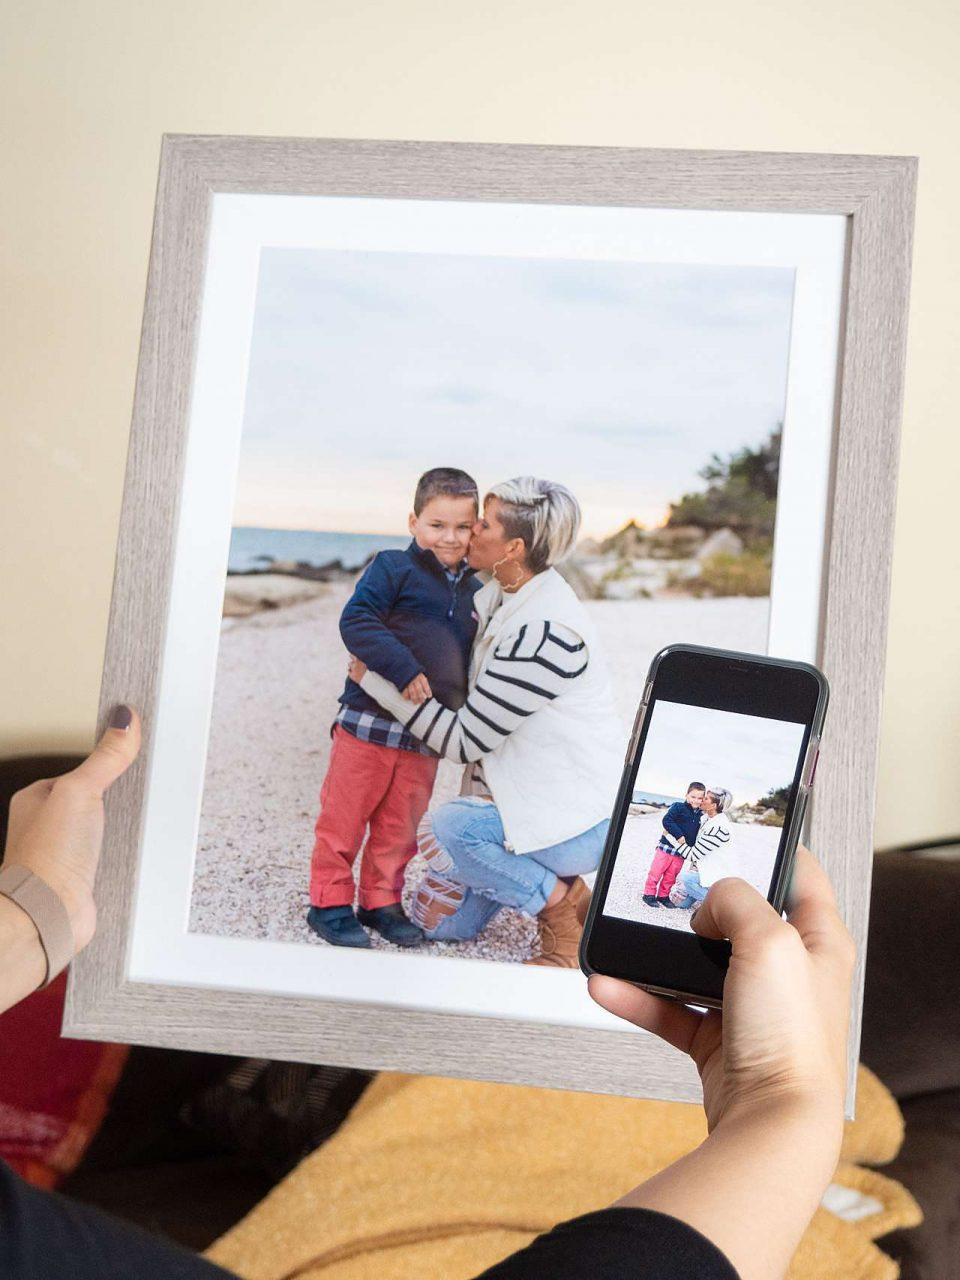 Phone taking picture of framed photo of mother and son